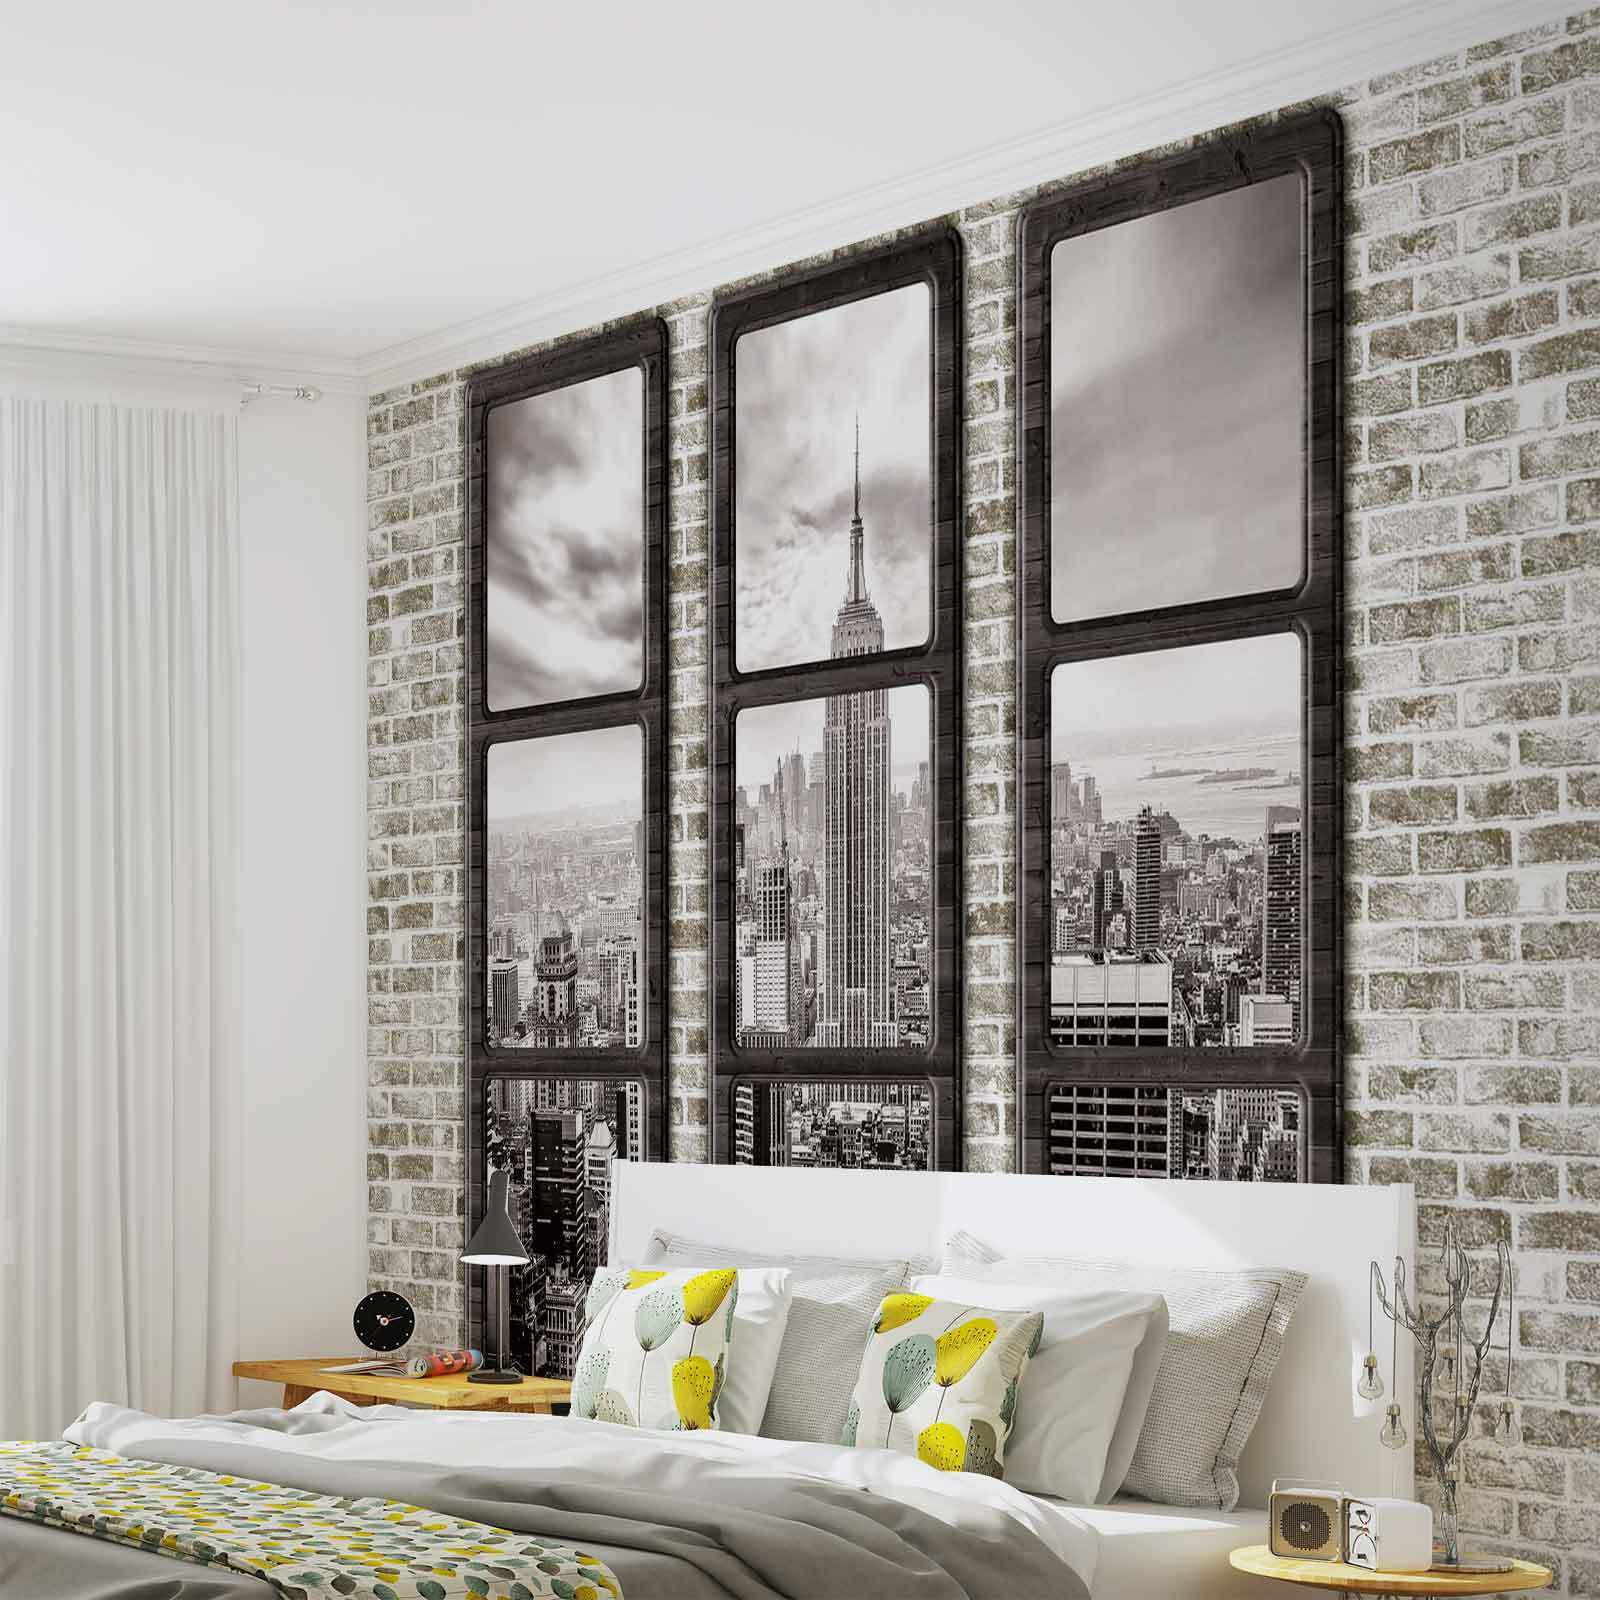 vlies fototapete new york city skyline fenster ansicht tapete mural 2833fw eur 1 00. Black Bedroom Furniture Sets. Home Design Ideas